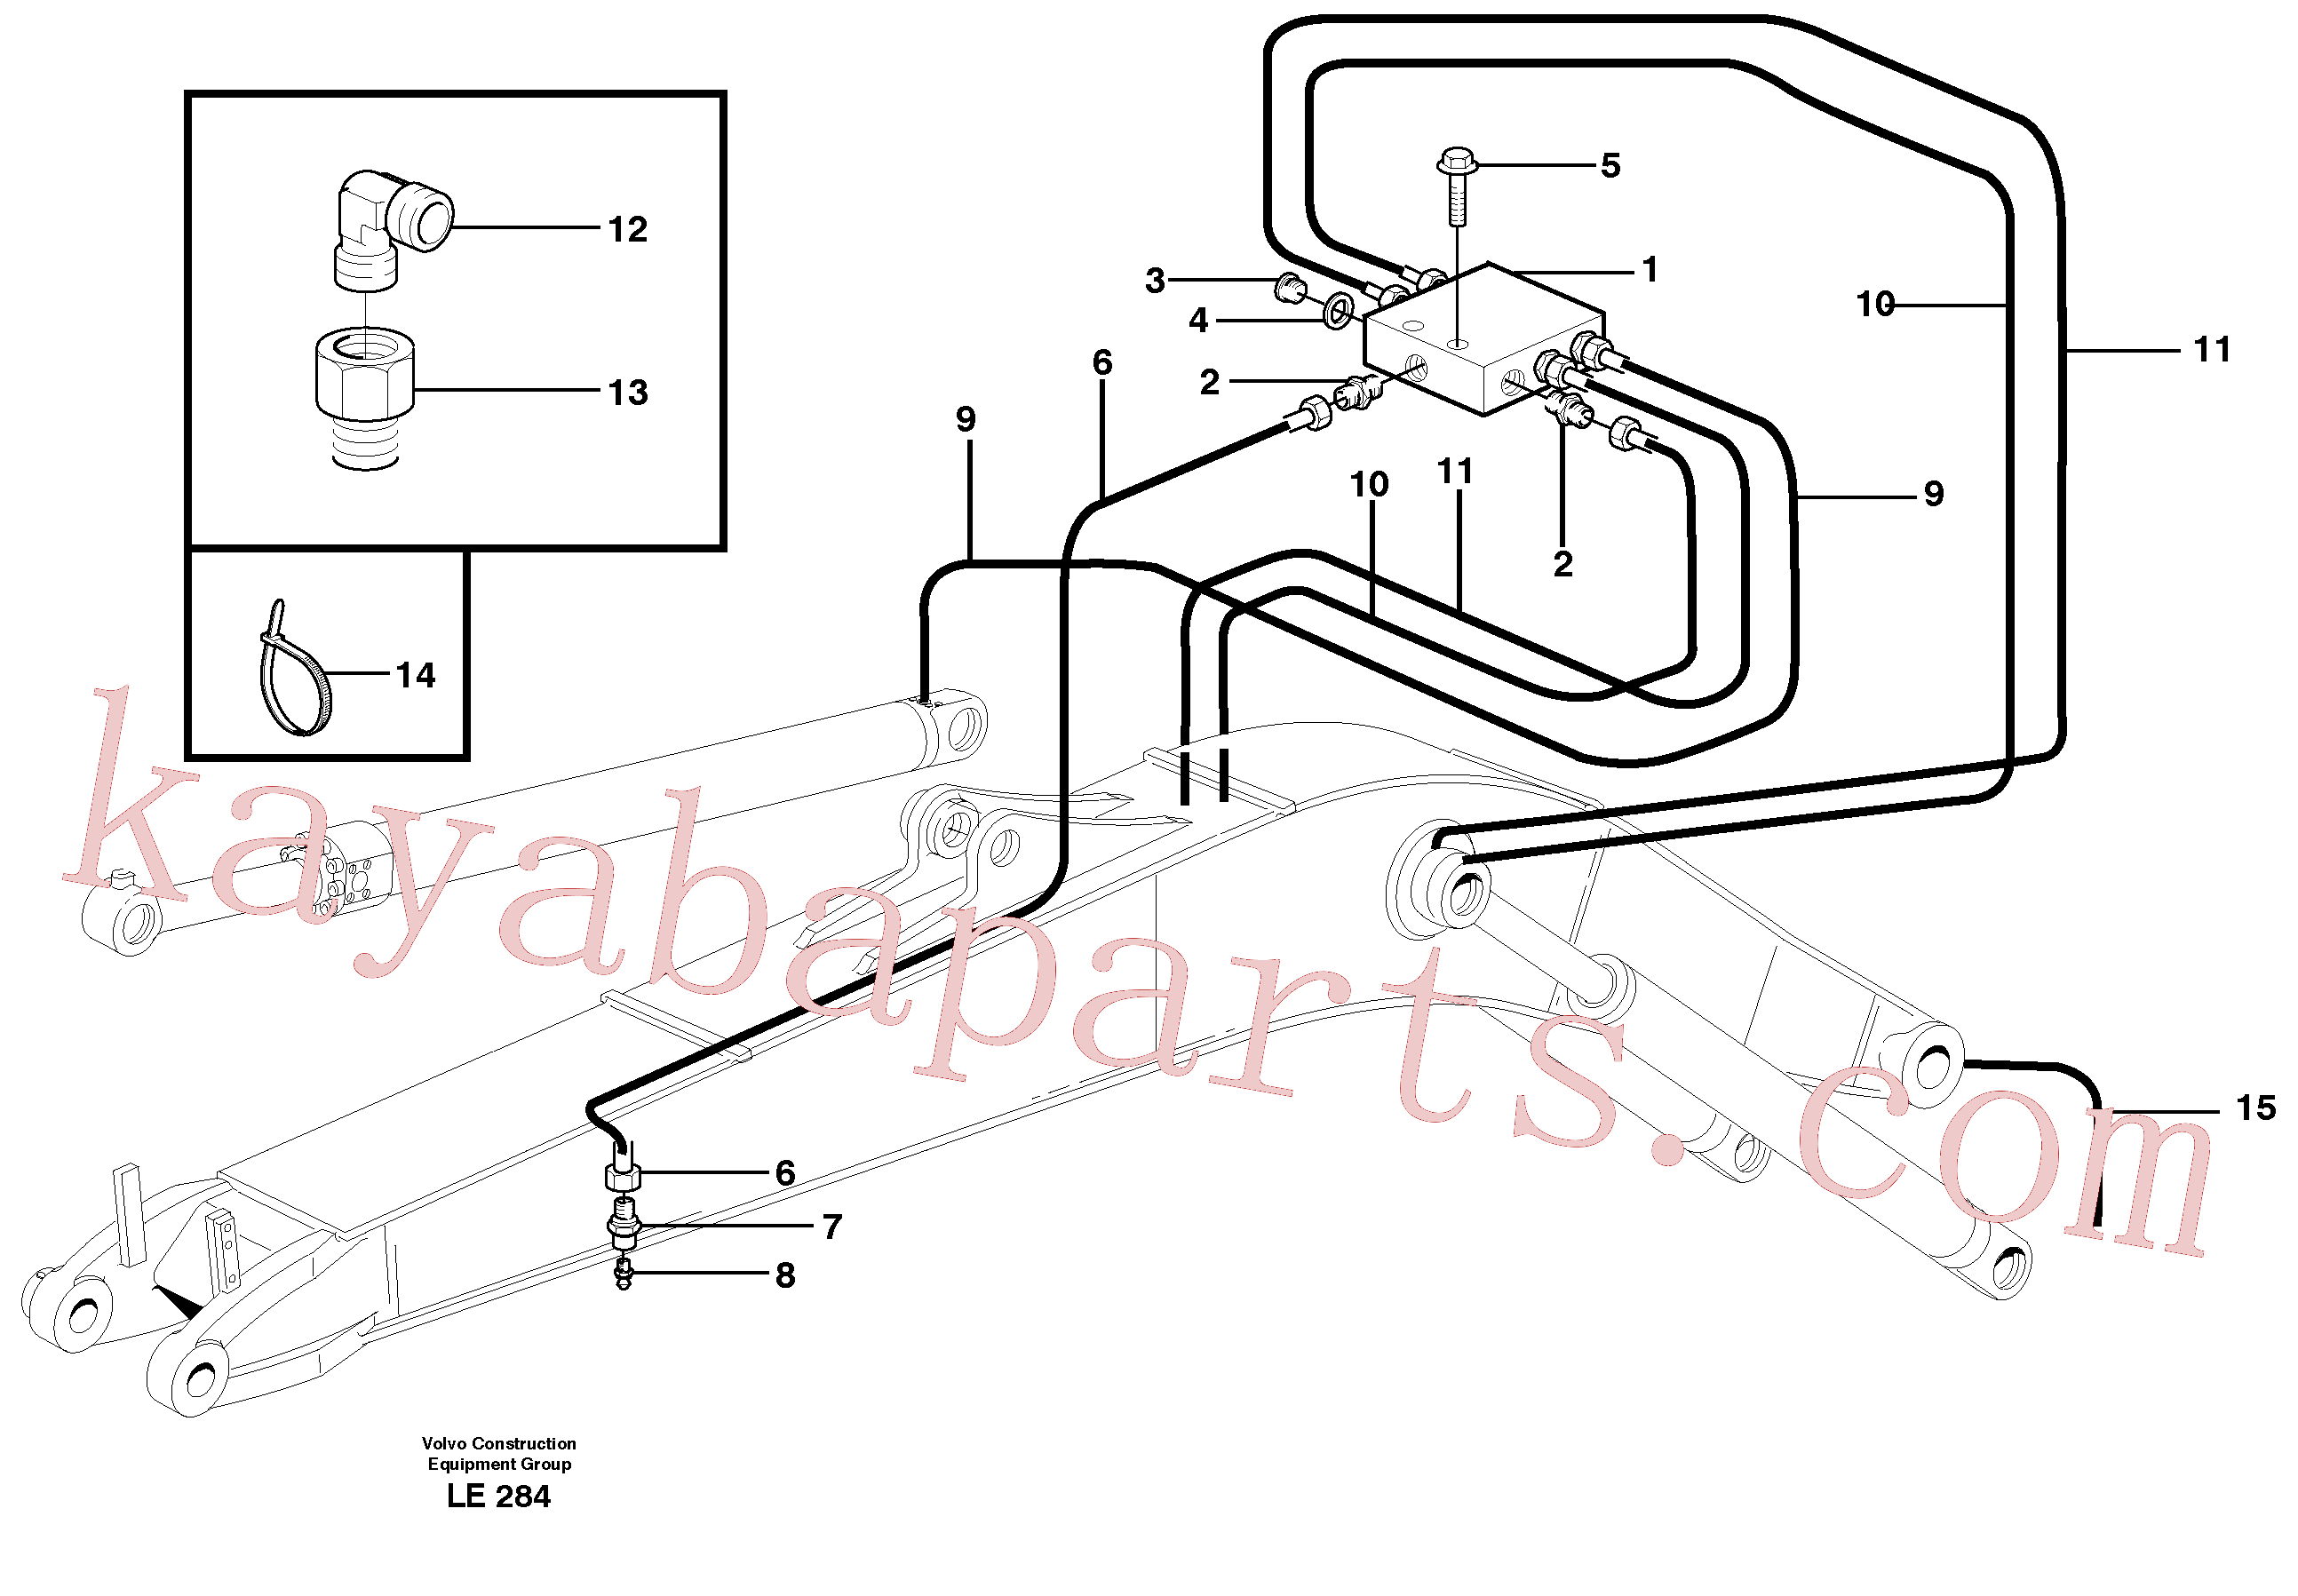 VOE11706652 for Volvo Central lubrication, mono boom(LE284 assembly)